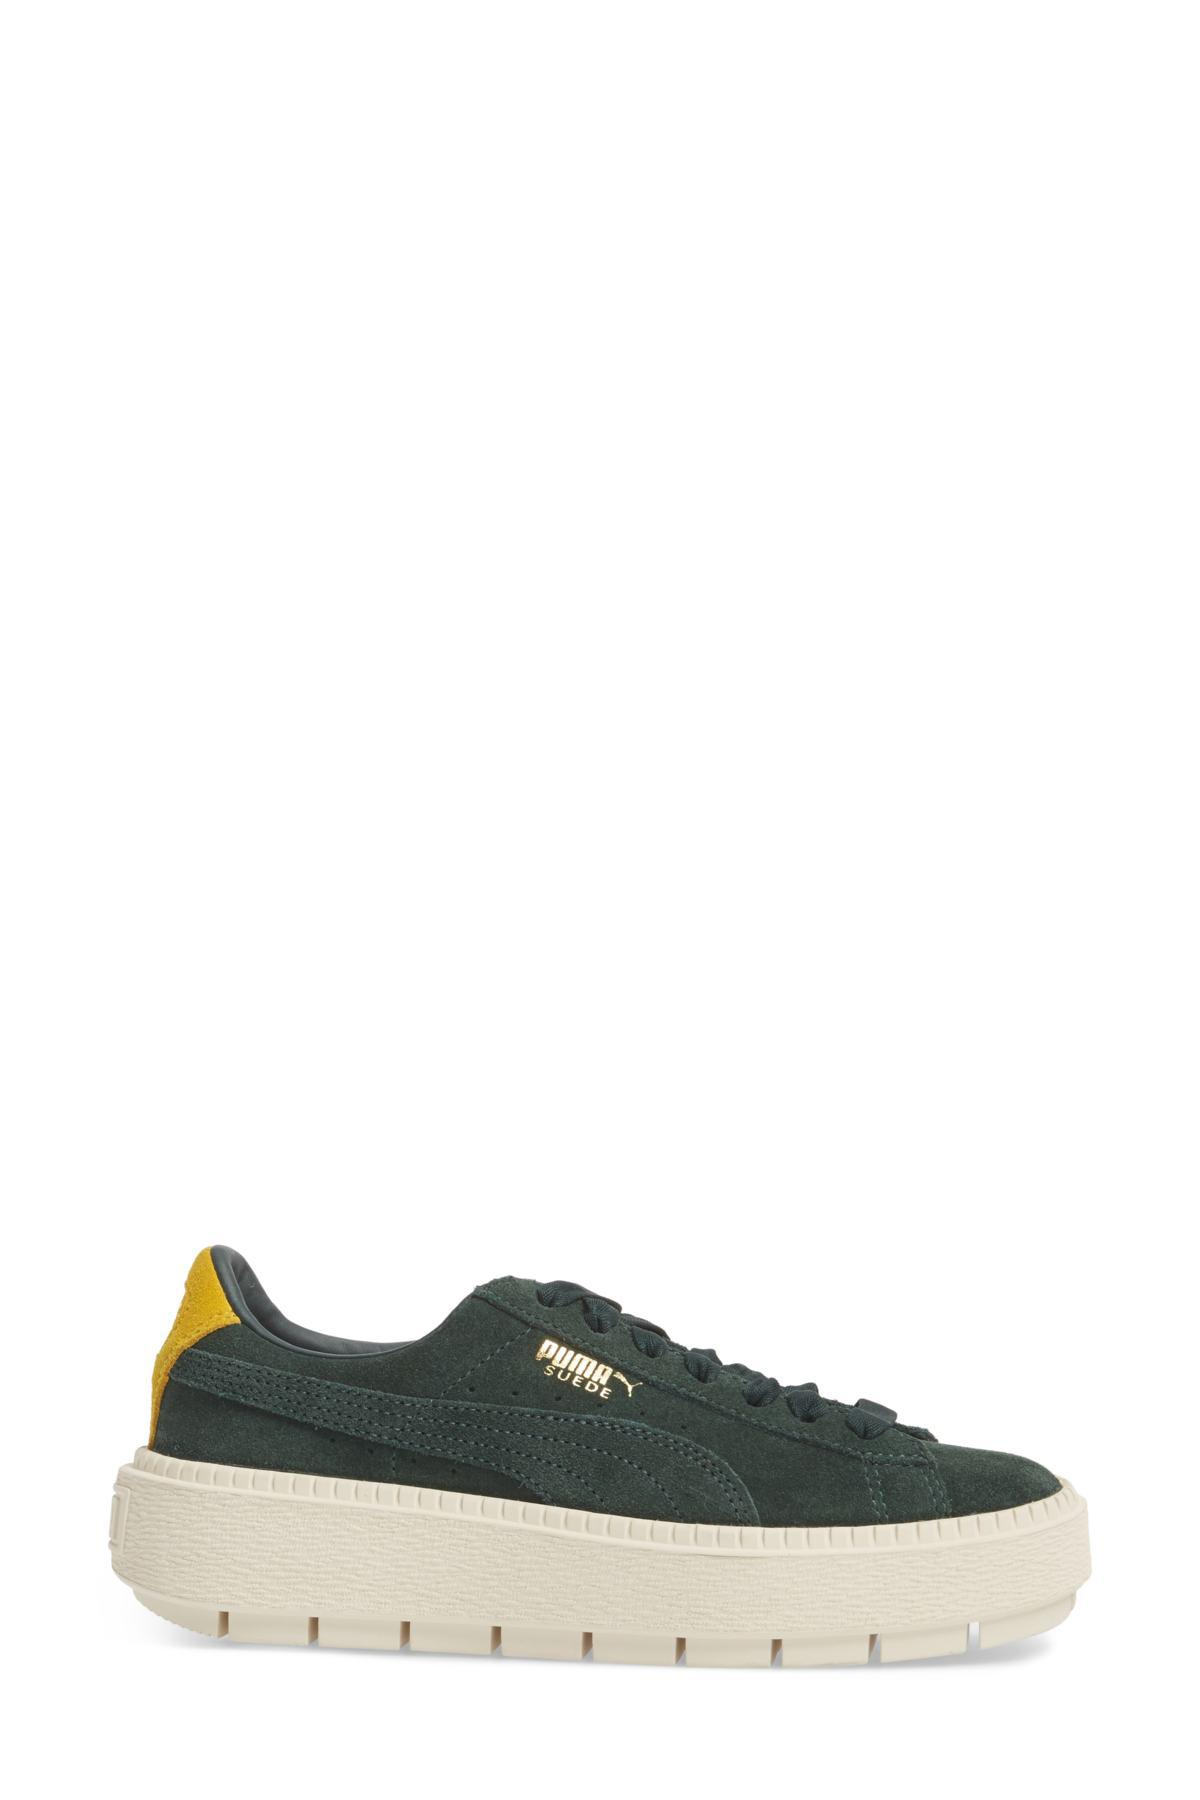 Lyst - PUMA Platform Trace Bold Leather Sneaker in Green 97fb0a710